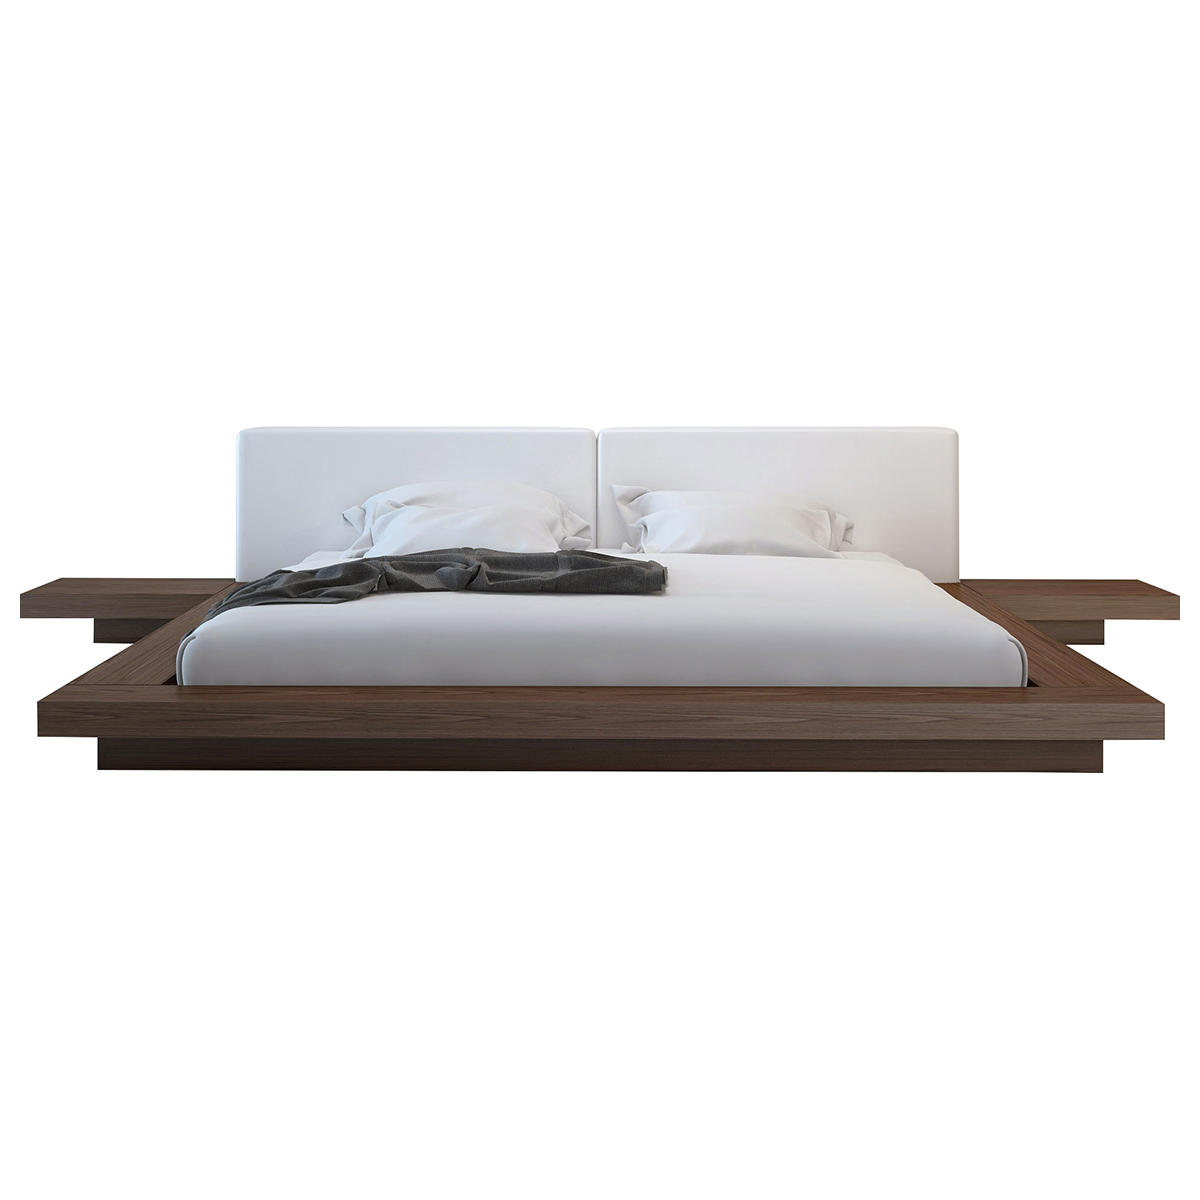 worth bed - Modern Bed Frames Queen